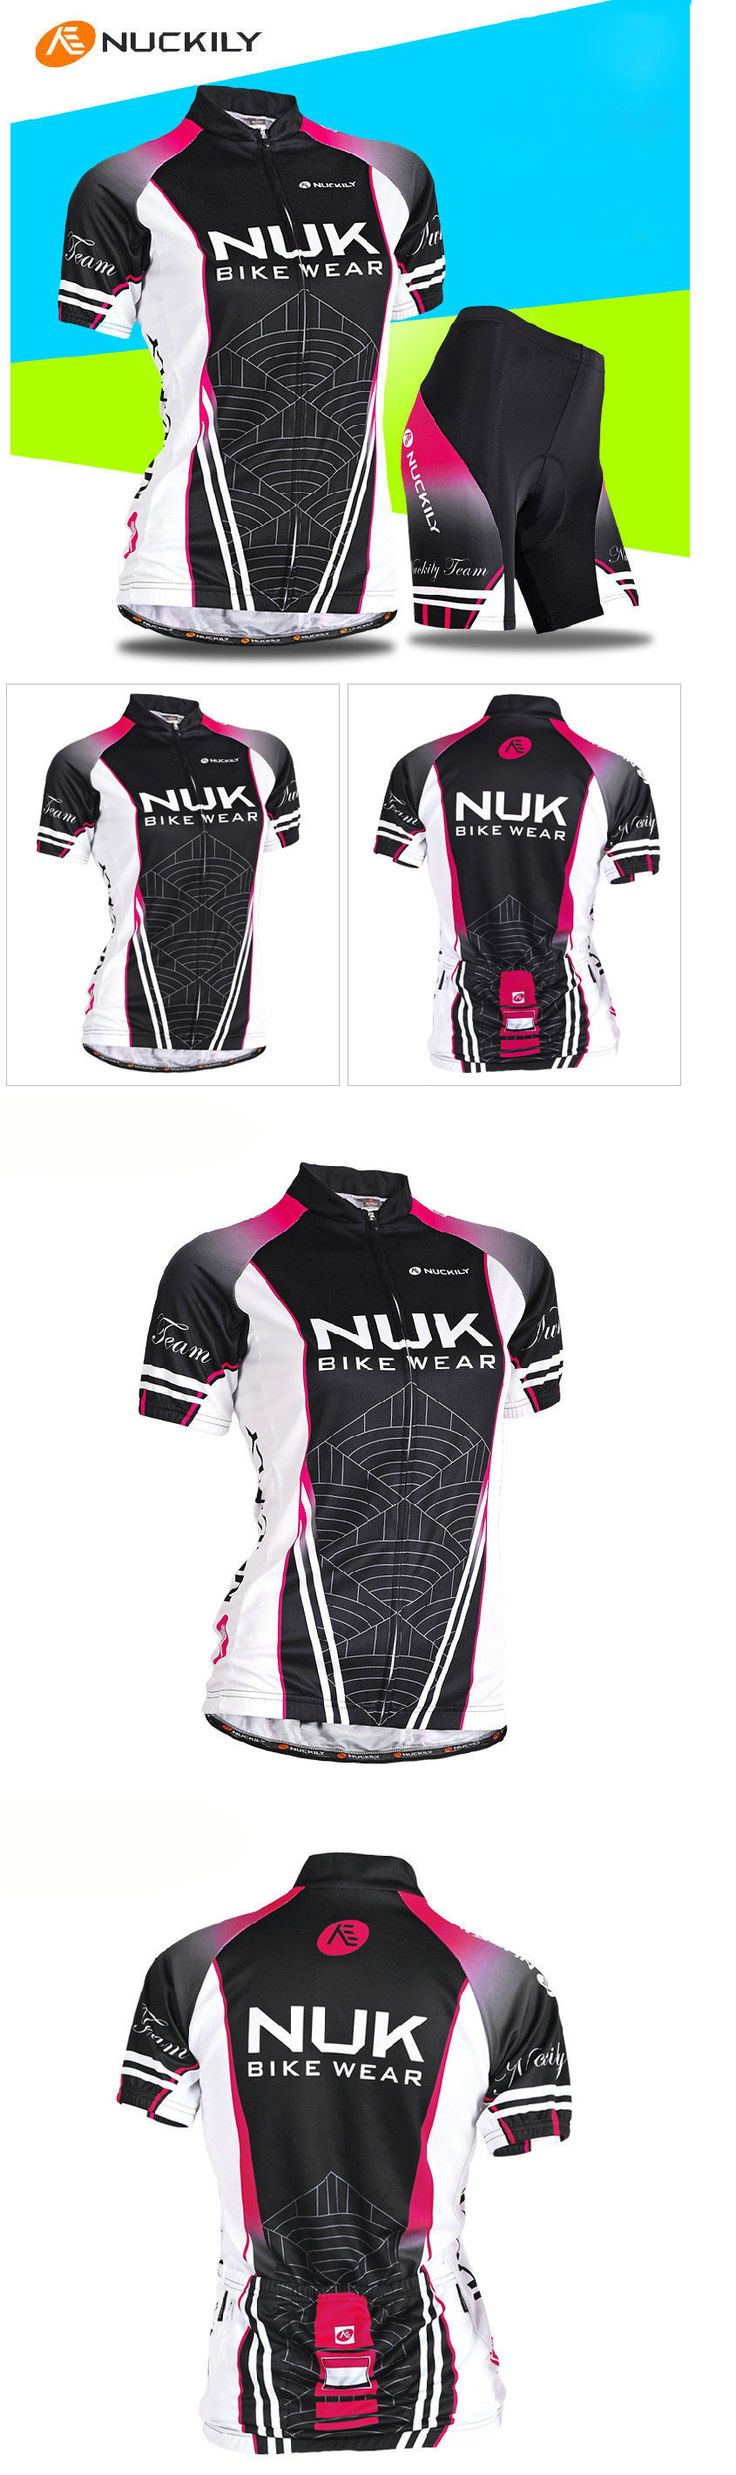 Jersey and Pant Short Sets 177852: Womens Balck Mesh Short Sleeve Cycling Jersey Mtb Clothing Set Bicycle Wear Suit BUY IT NOW ONLY: $30.29